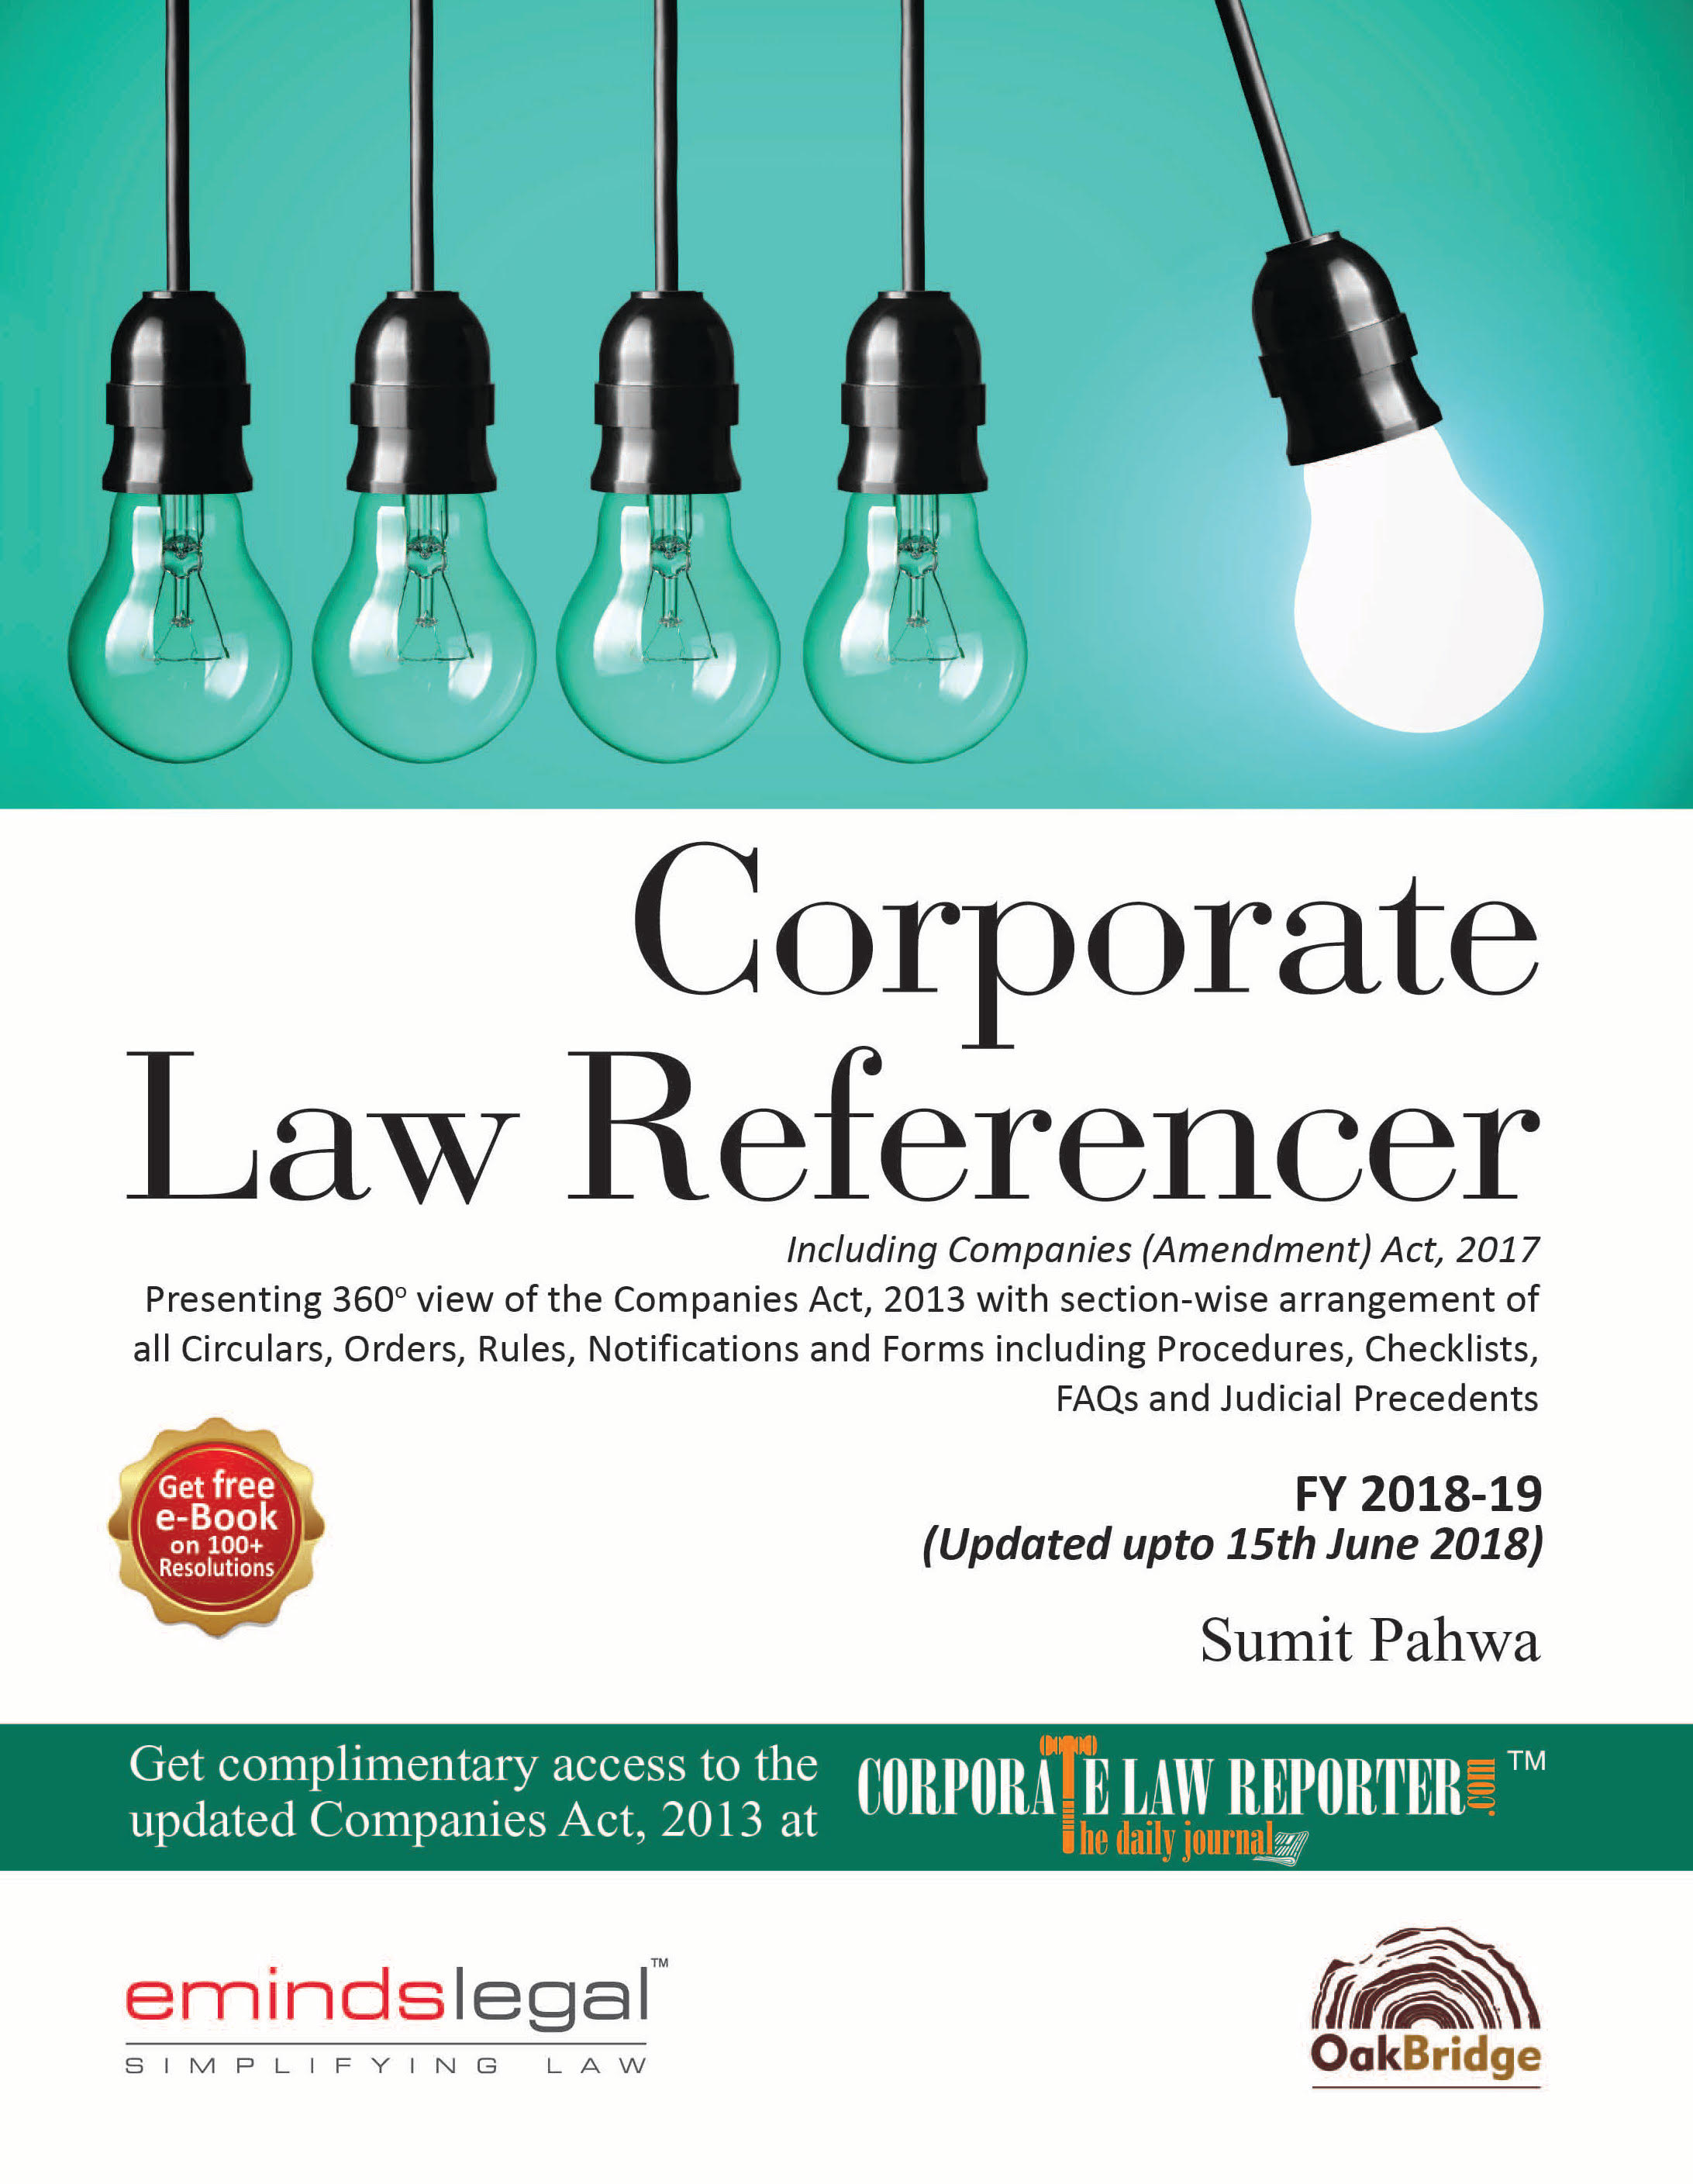 Corporate Law Referencer front cover 4th edition